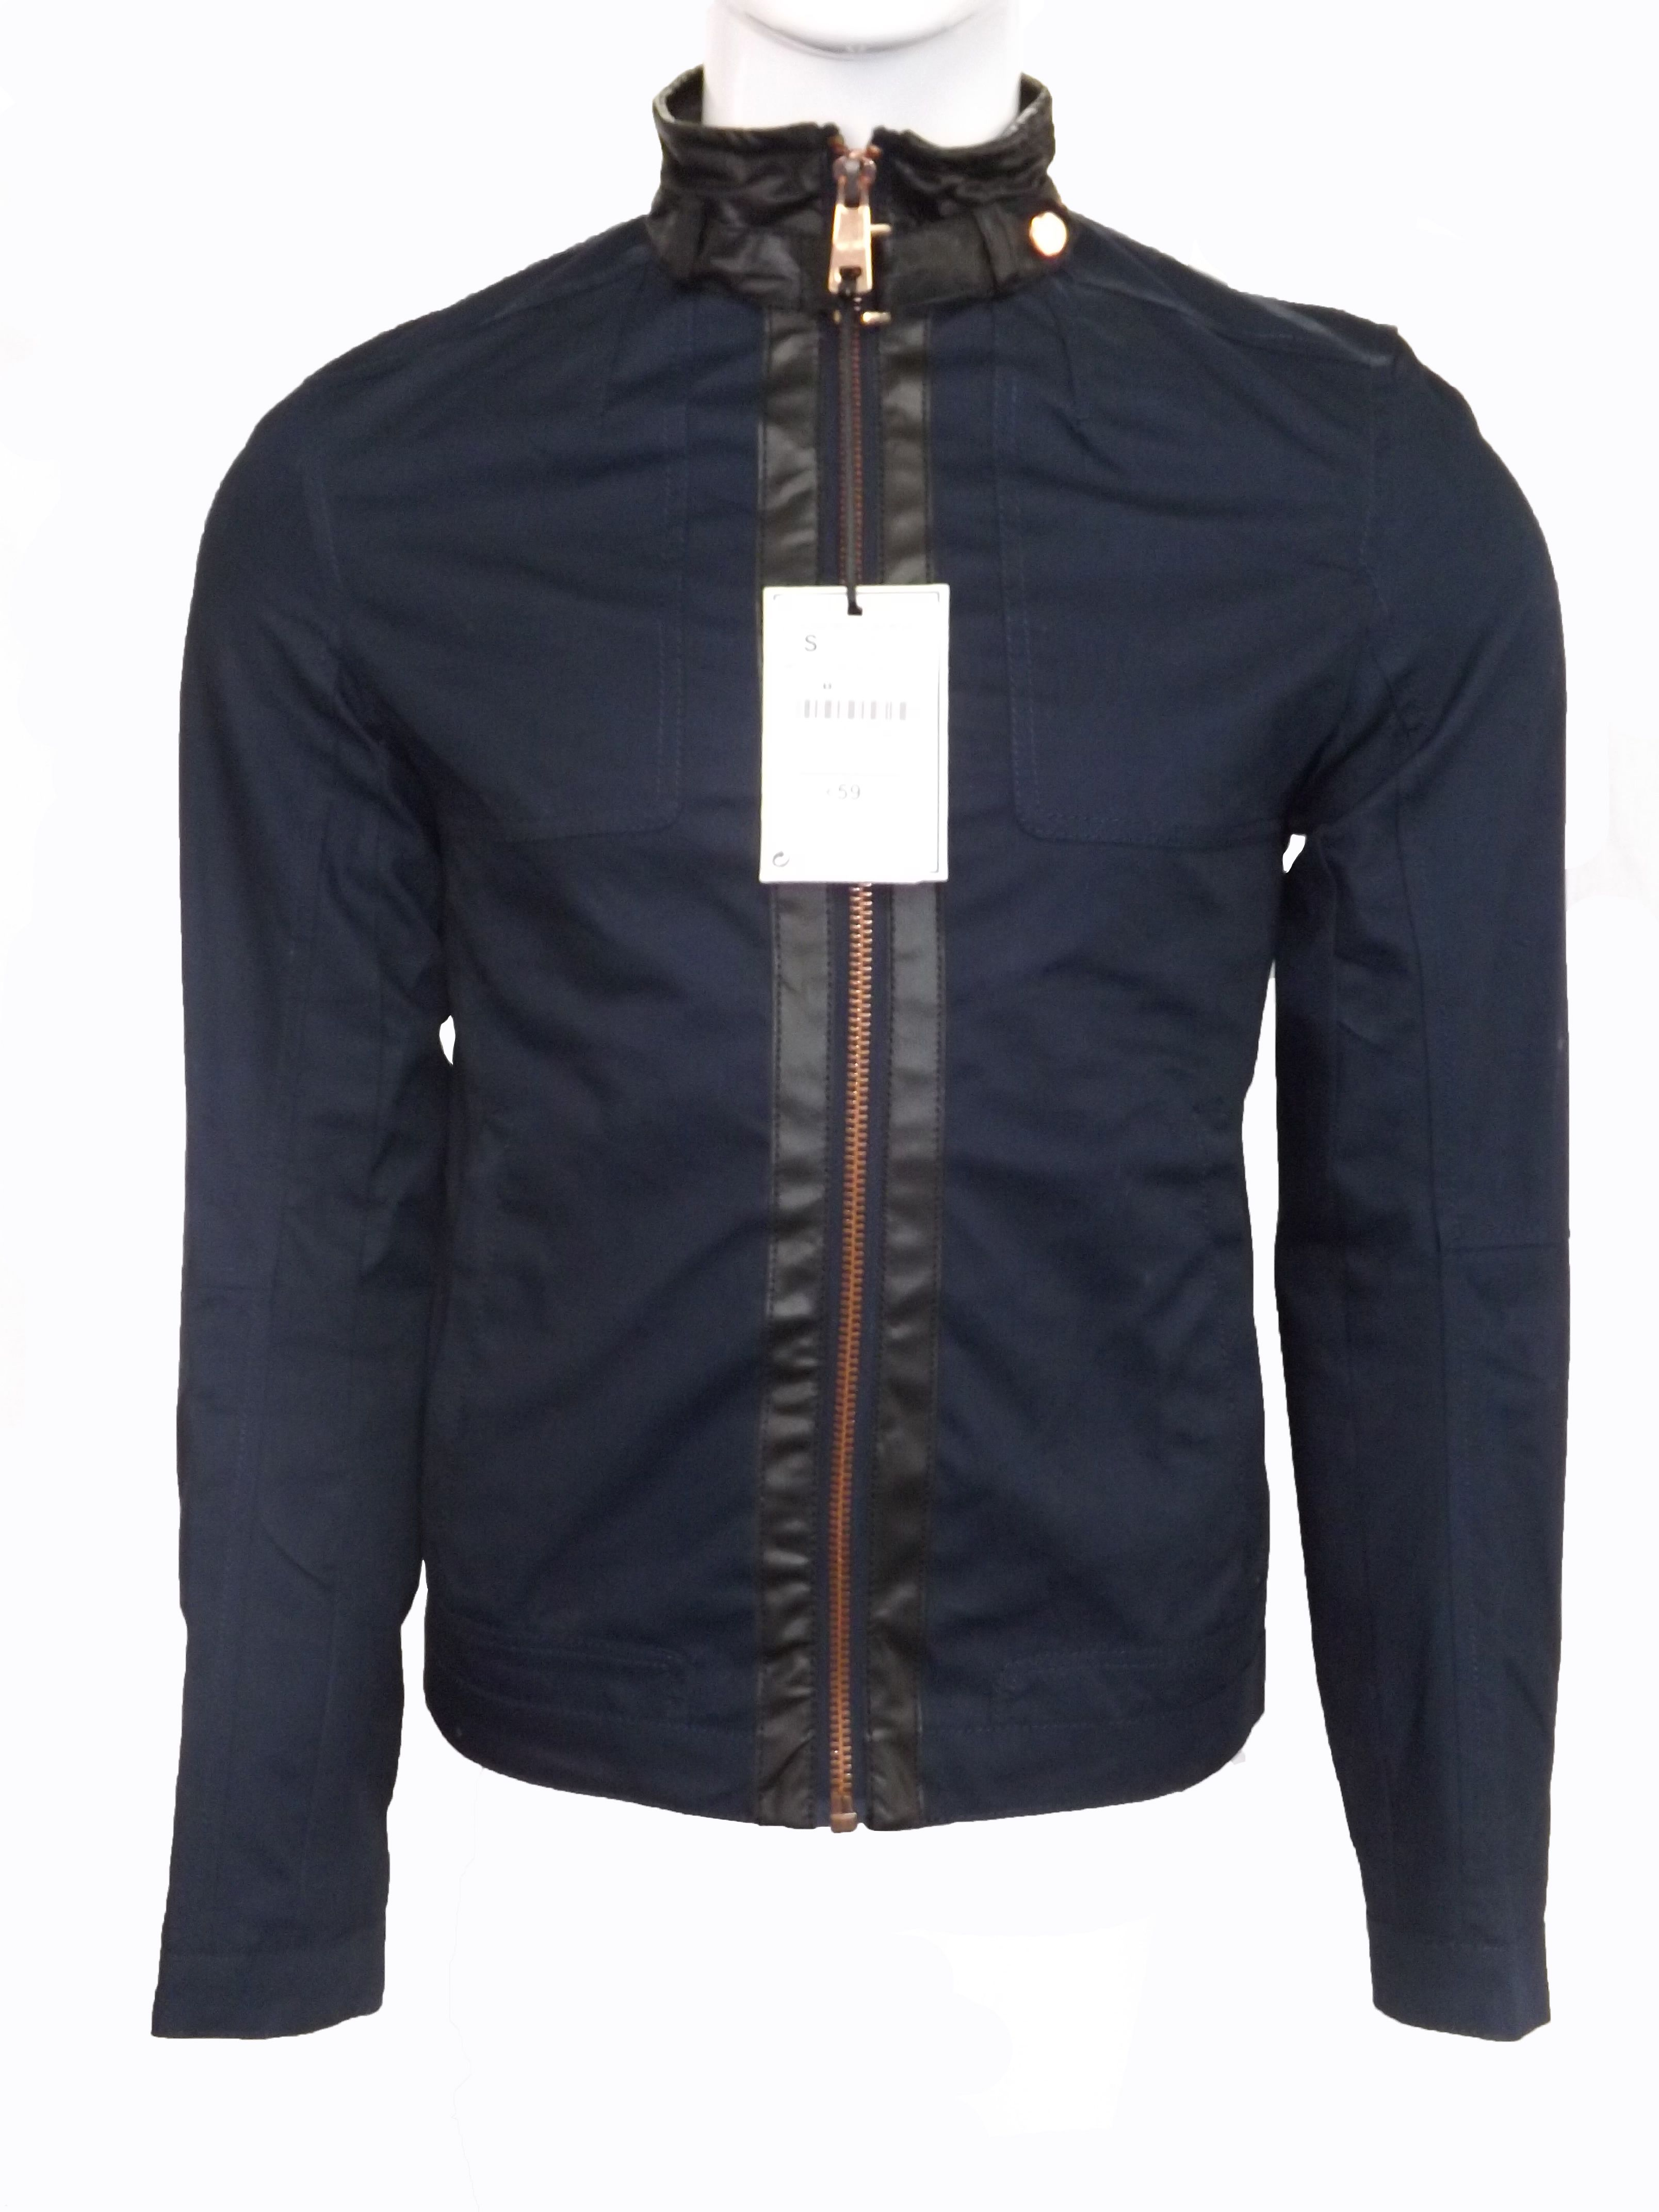 Zara Mens Denim Couture Biker Jacket. You can purchase it